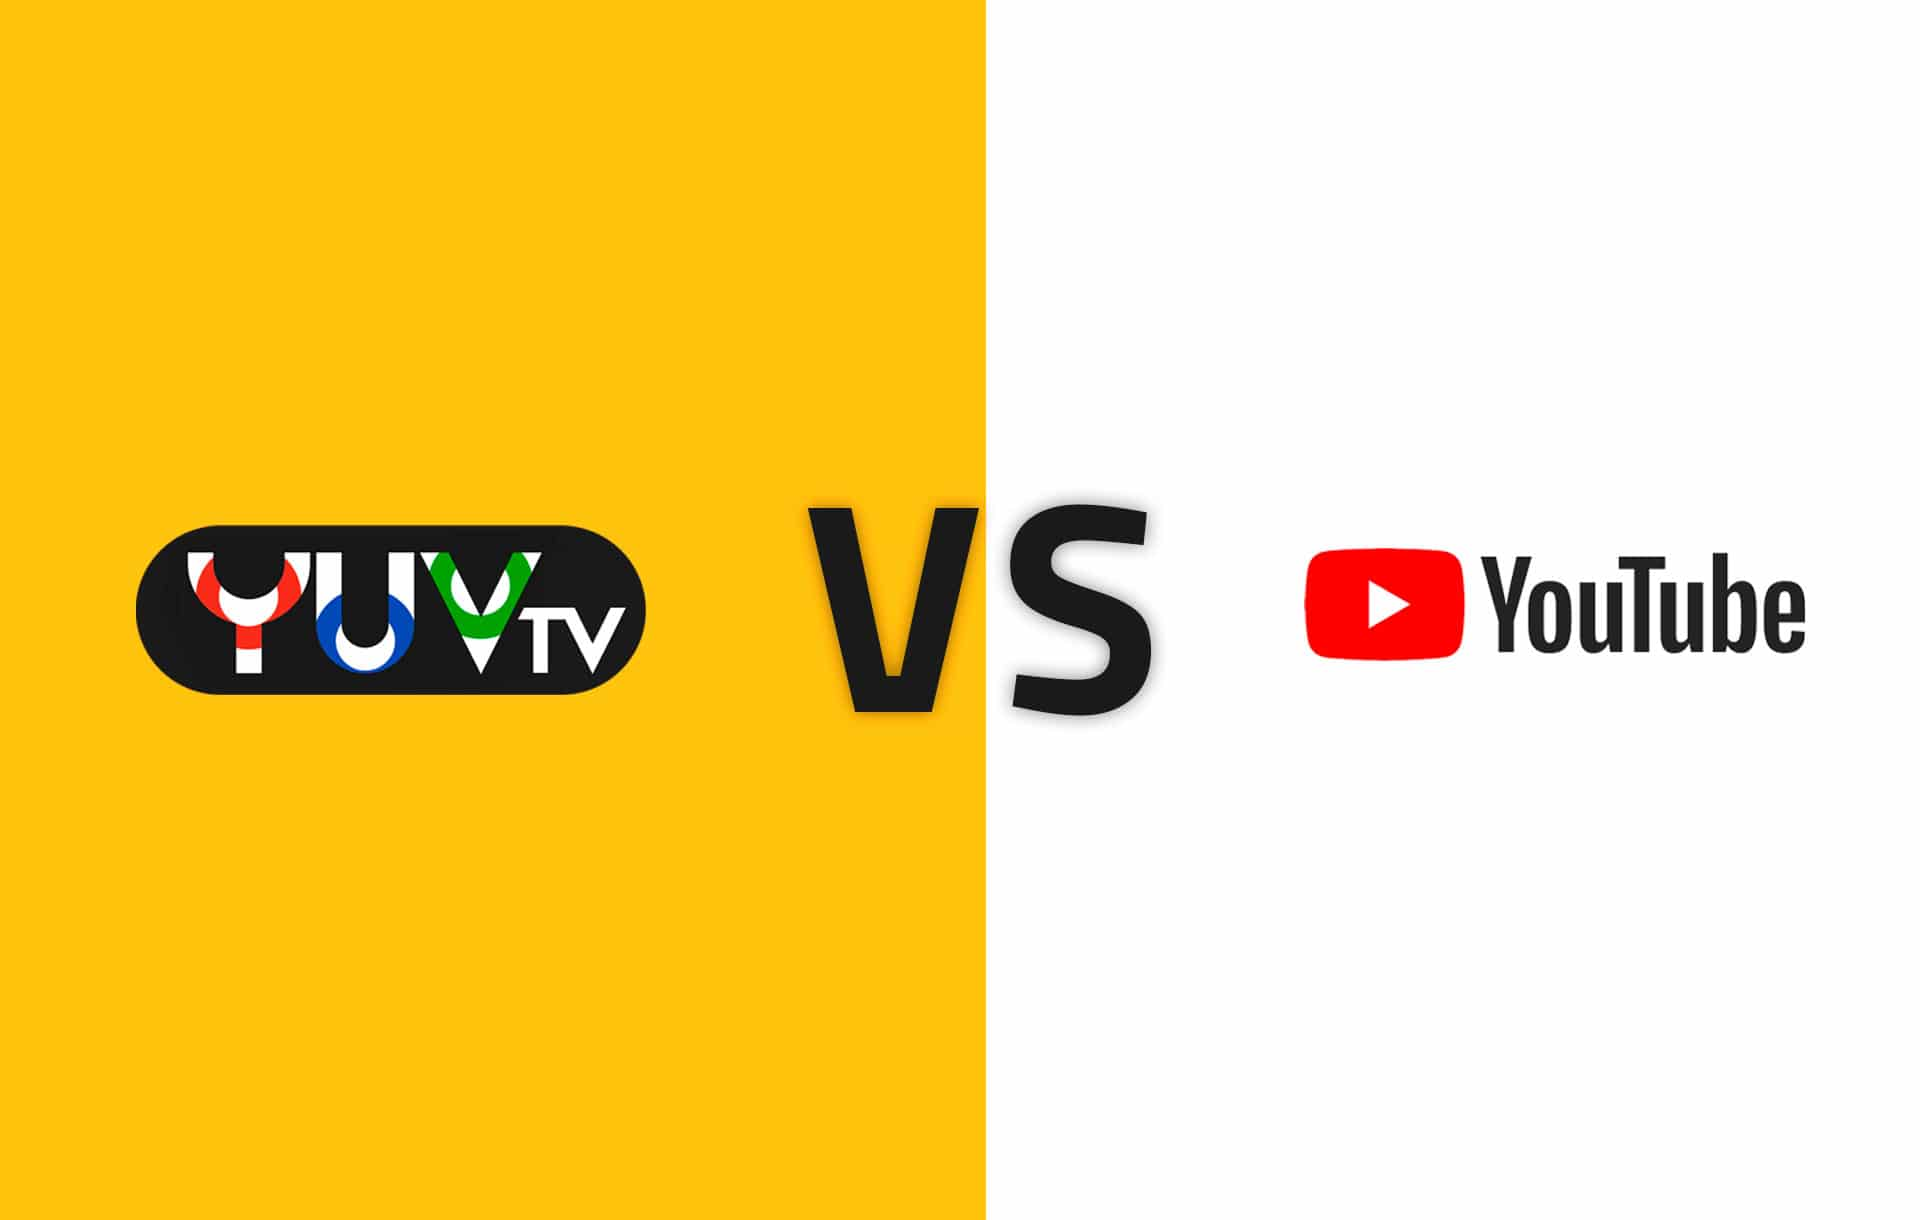 YUV TV vs YouTube